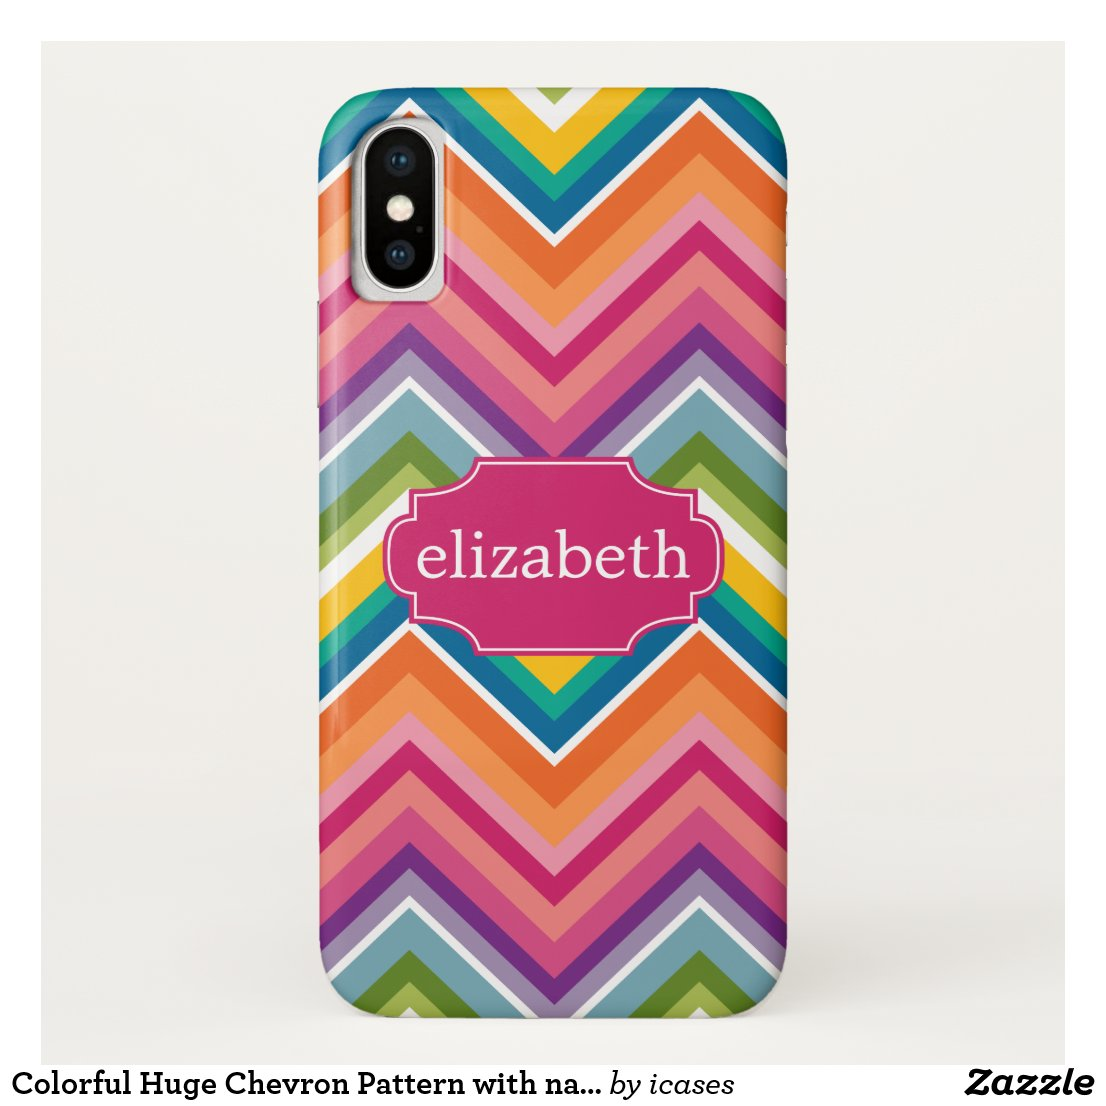 Colorful Huge Chevron Pattern with name iPhone X Case